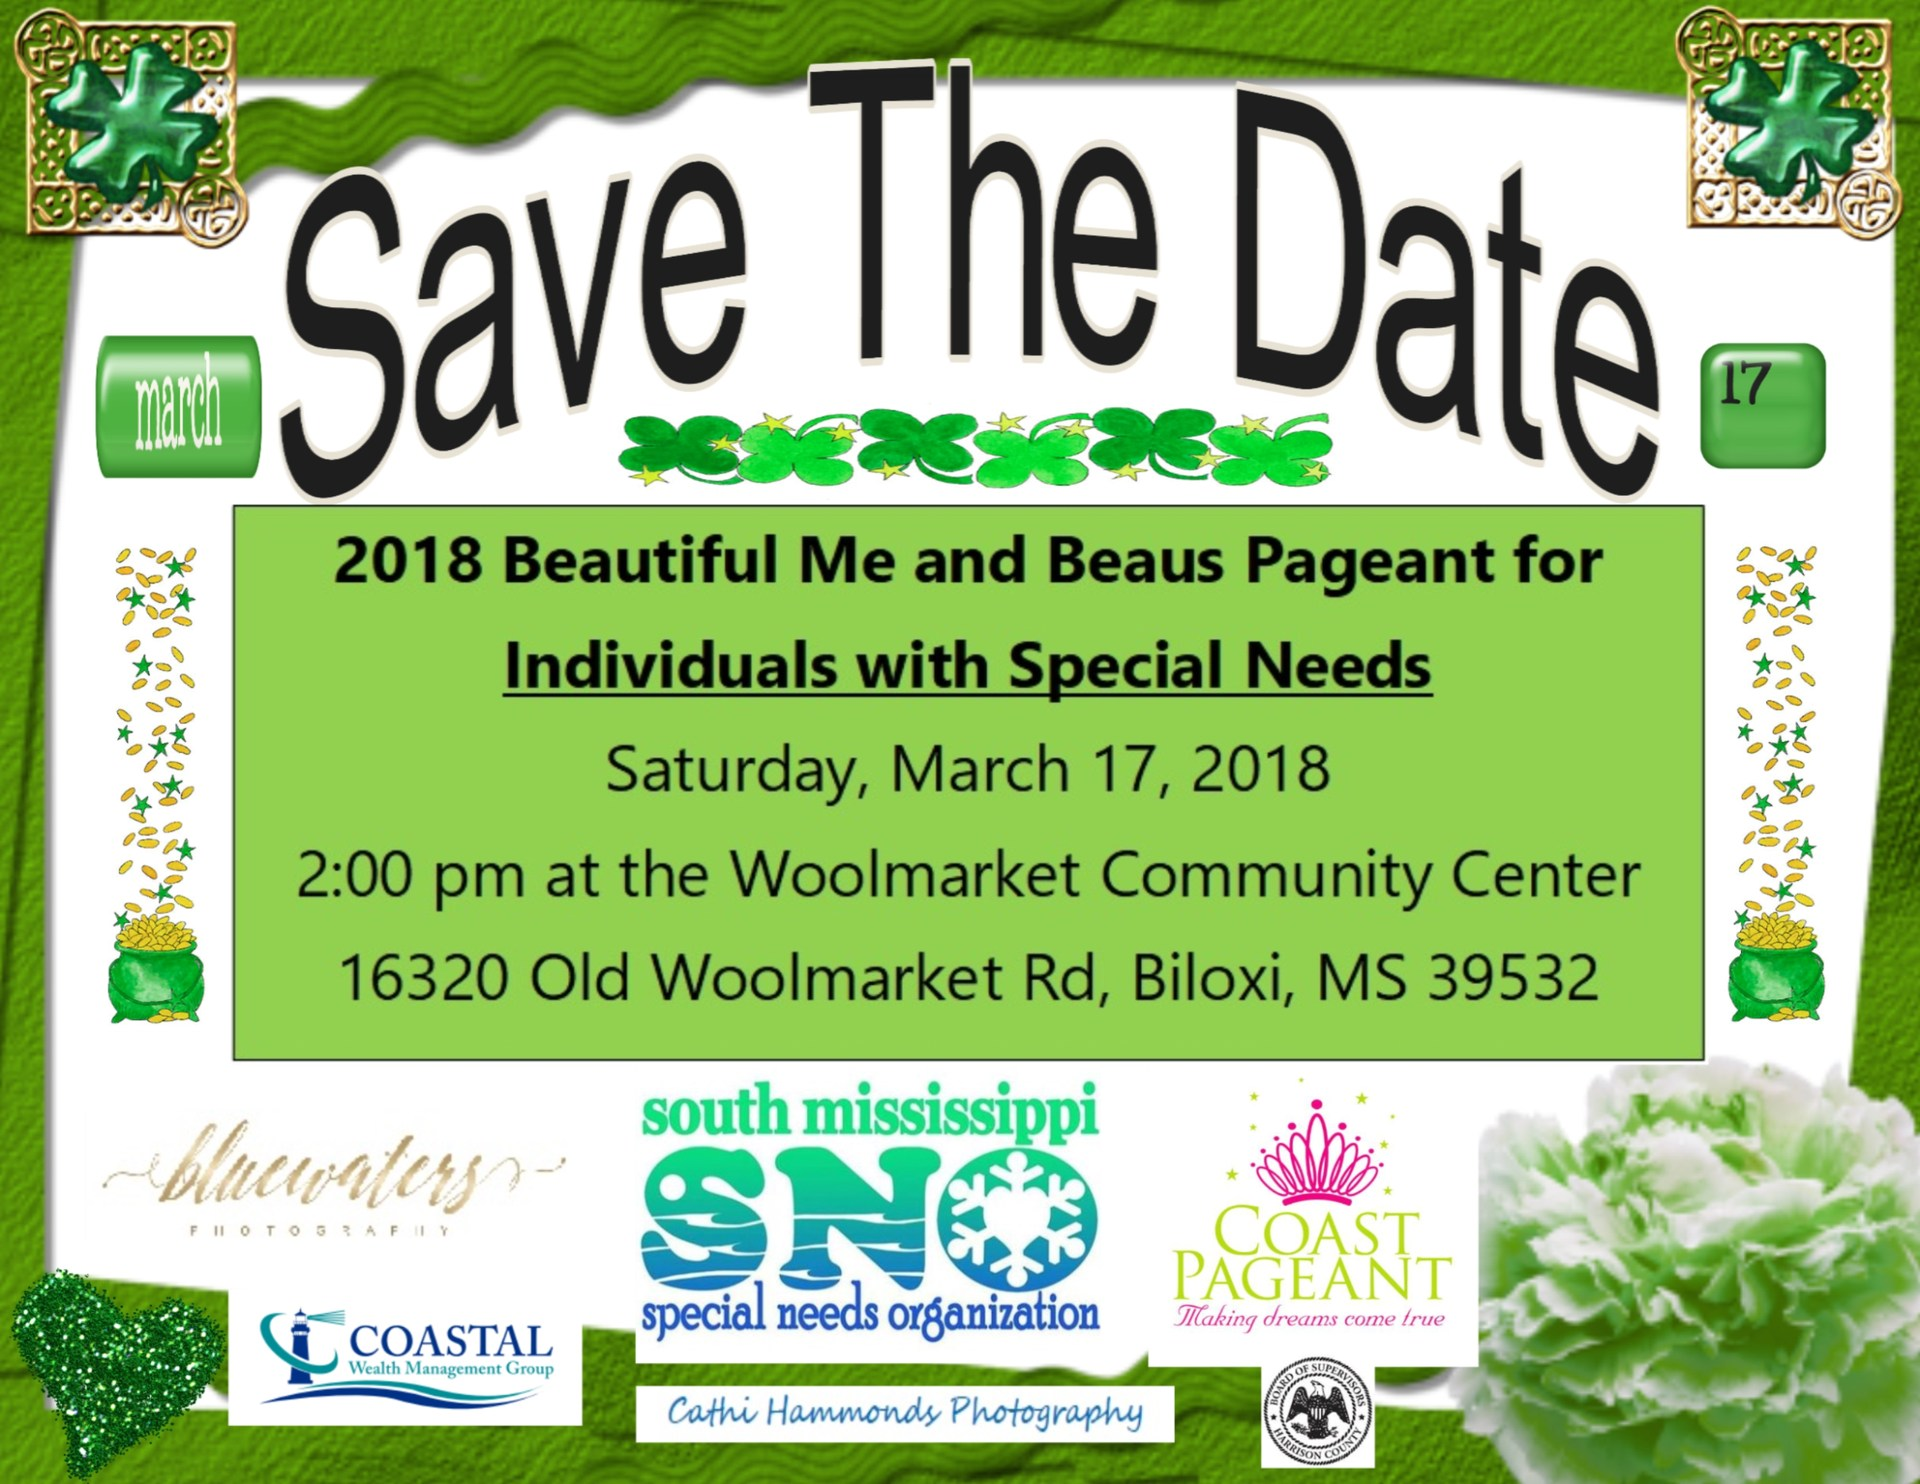 2018 Beautiful Me and Beau Pageant for Special Needs March 17, 2017 2:00 pm Woolmarket Community Center